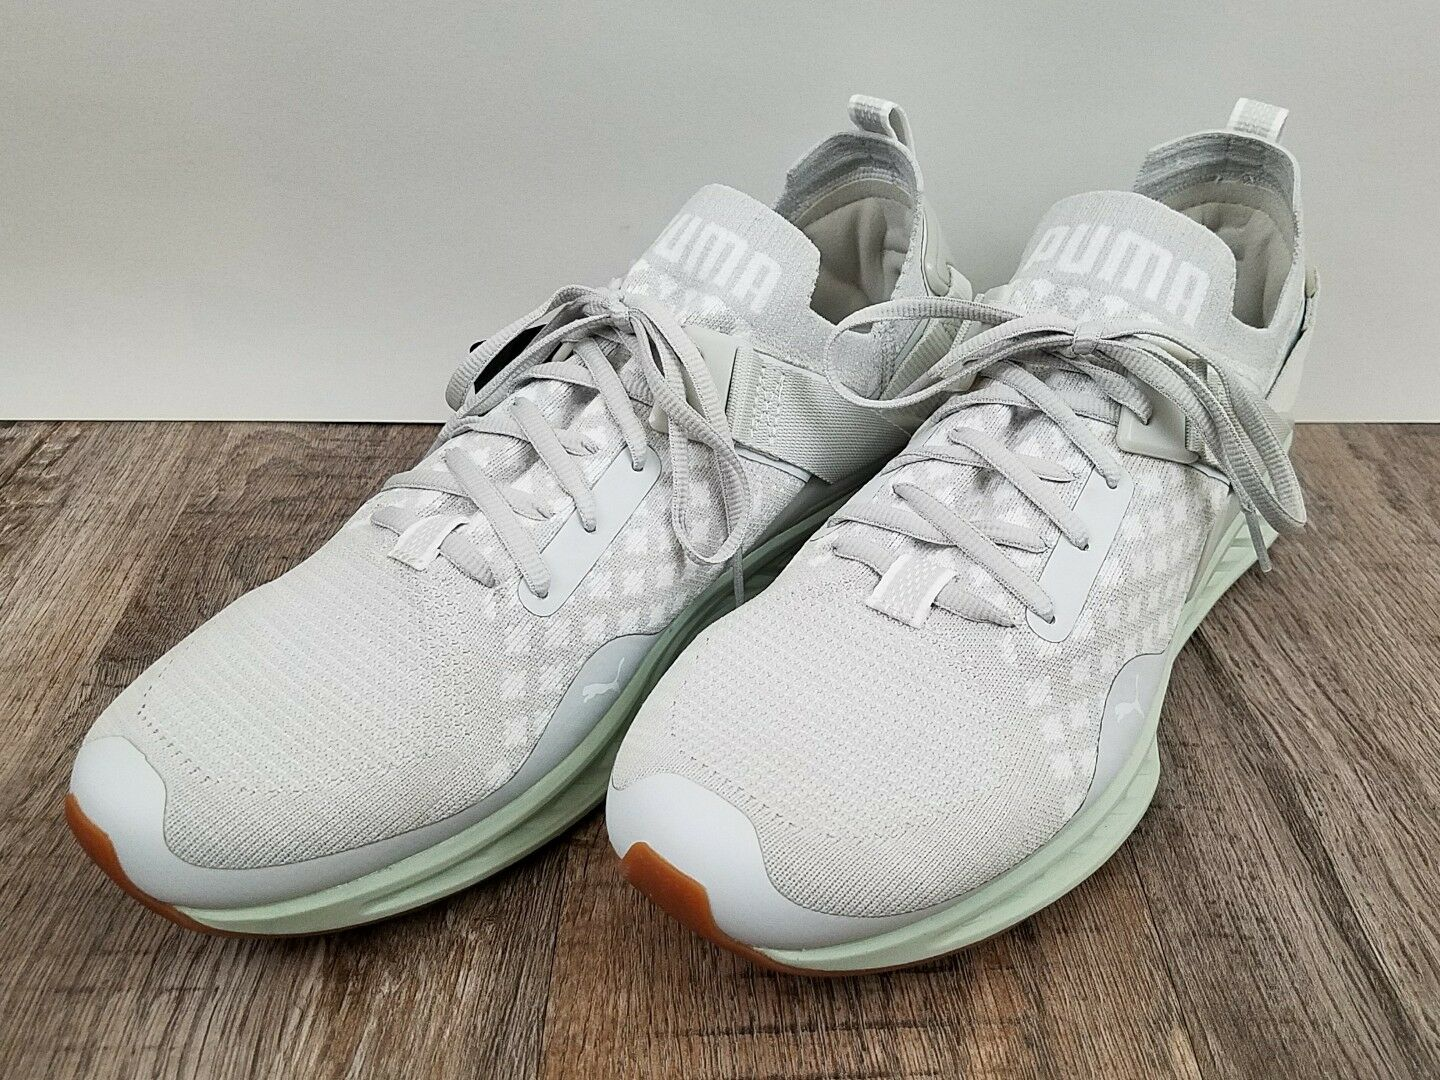 The PUMA Ignite 3 Evoknit Lo 189904 08 White Light Gray Mint Size 11.5 Scarpe classiche da uomo